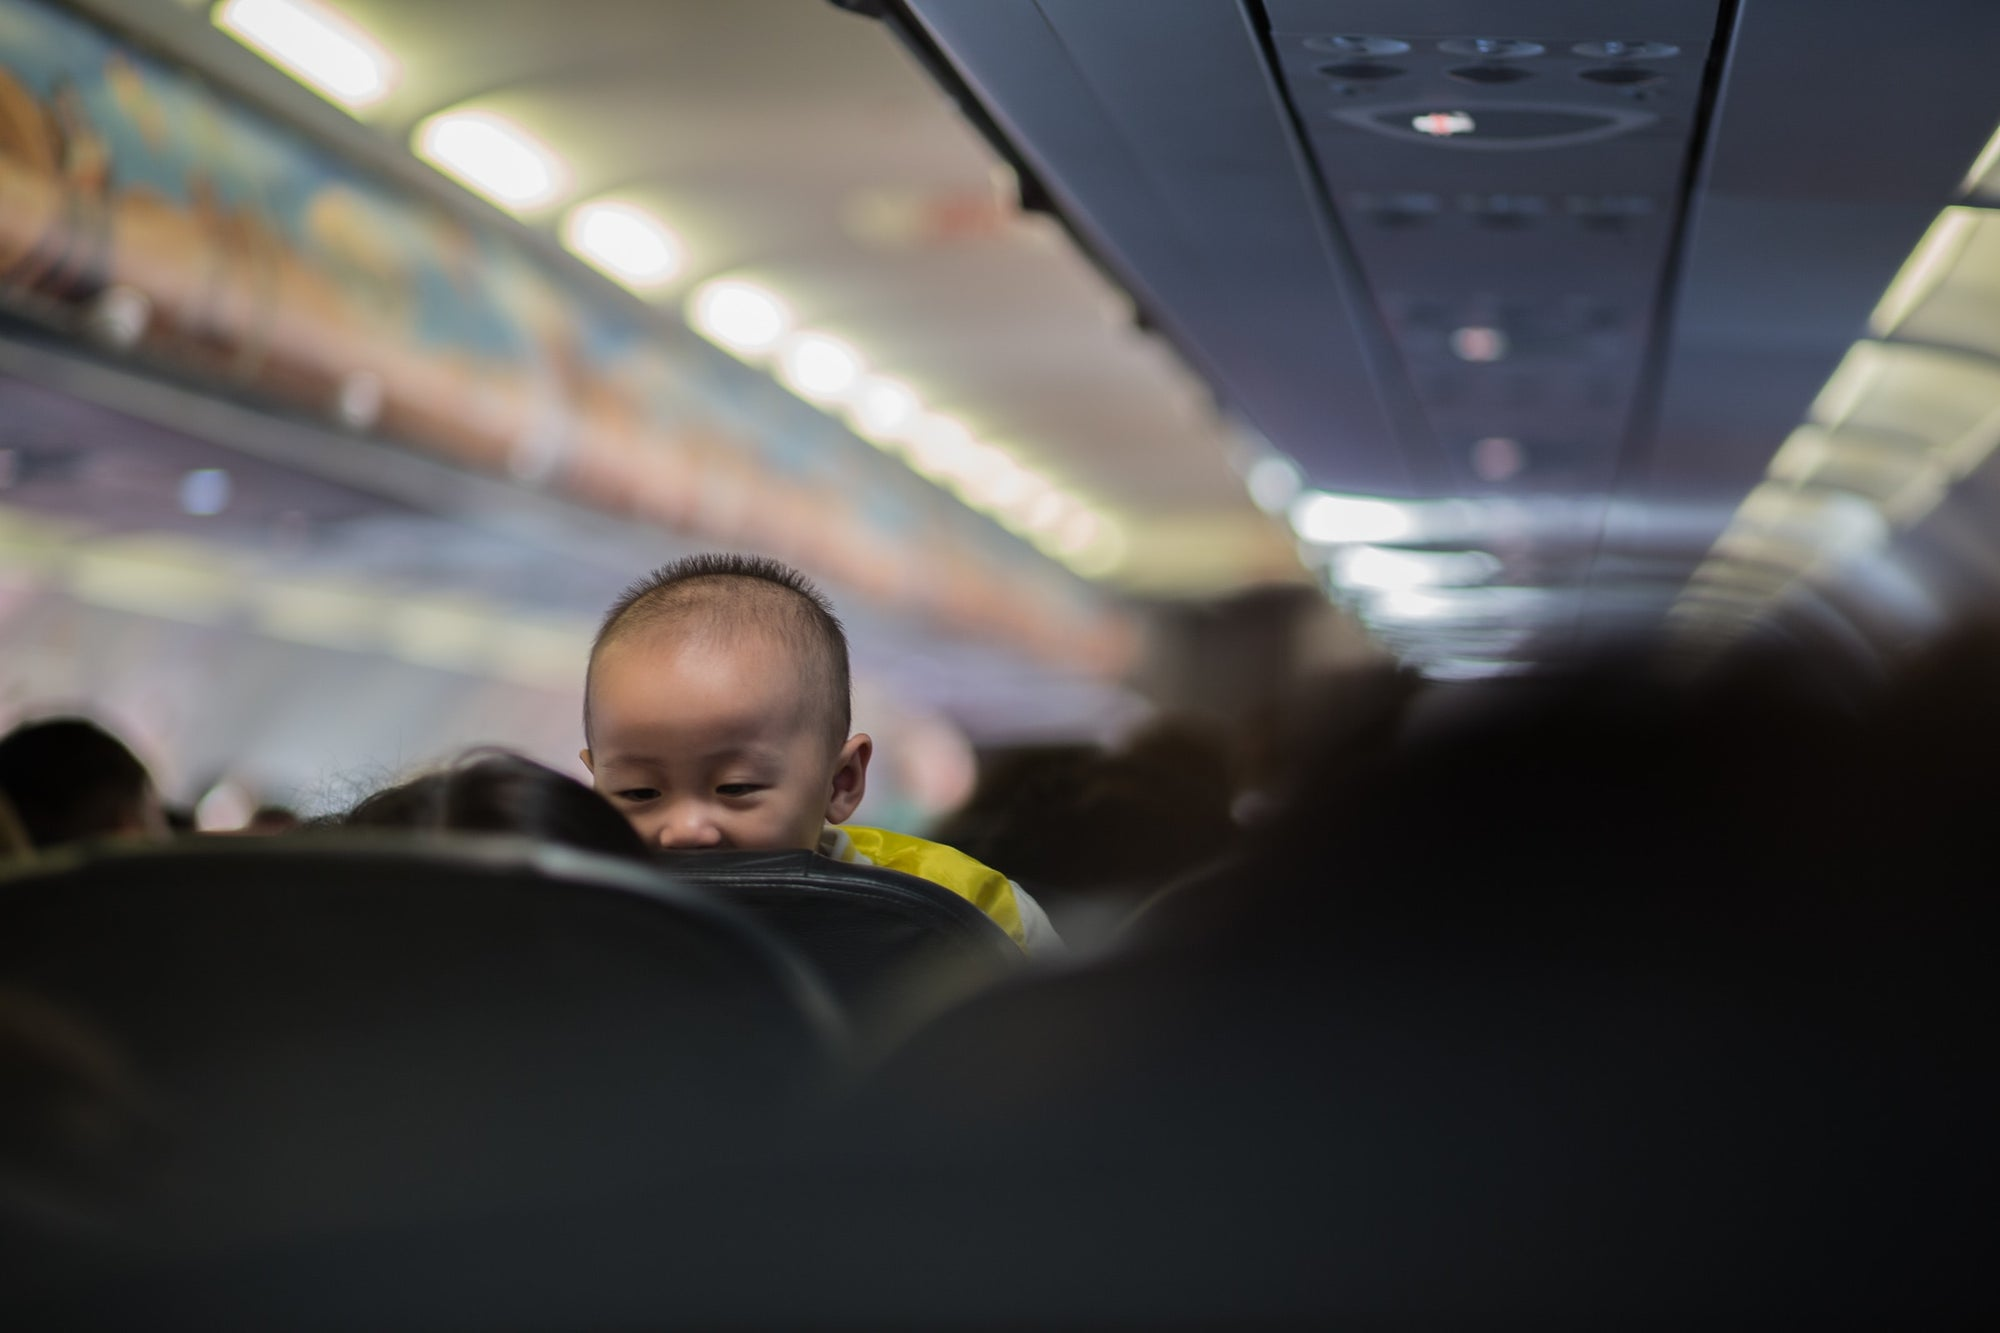 Kids on a Plane: Secrets to Surviving Air Travel with Kids